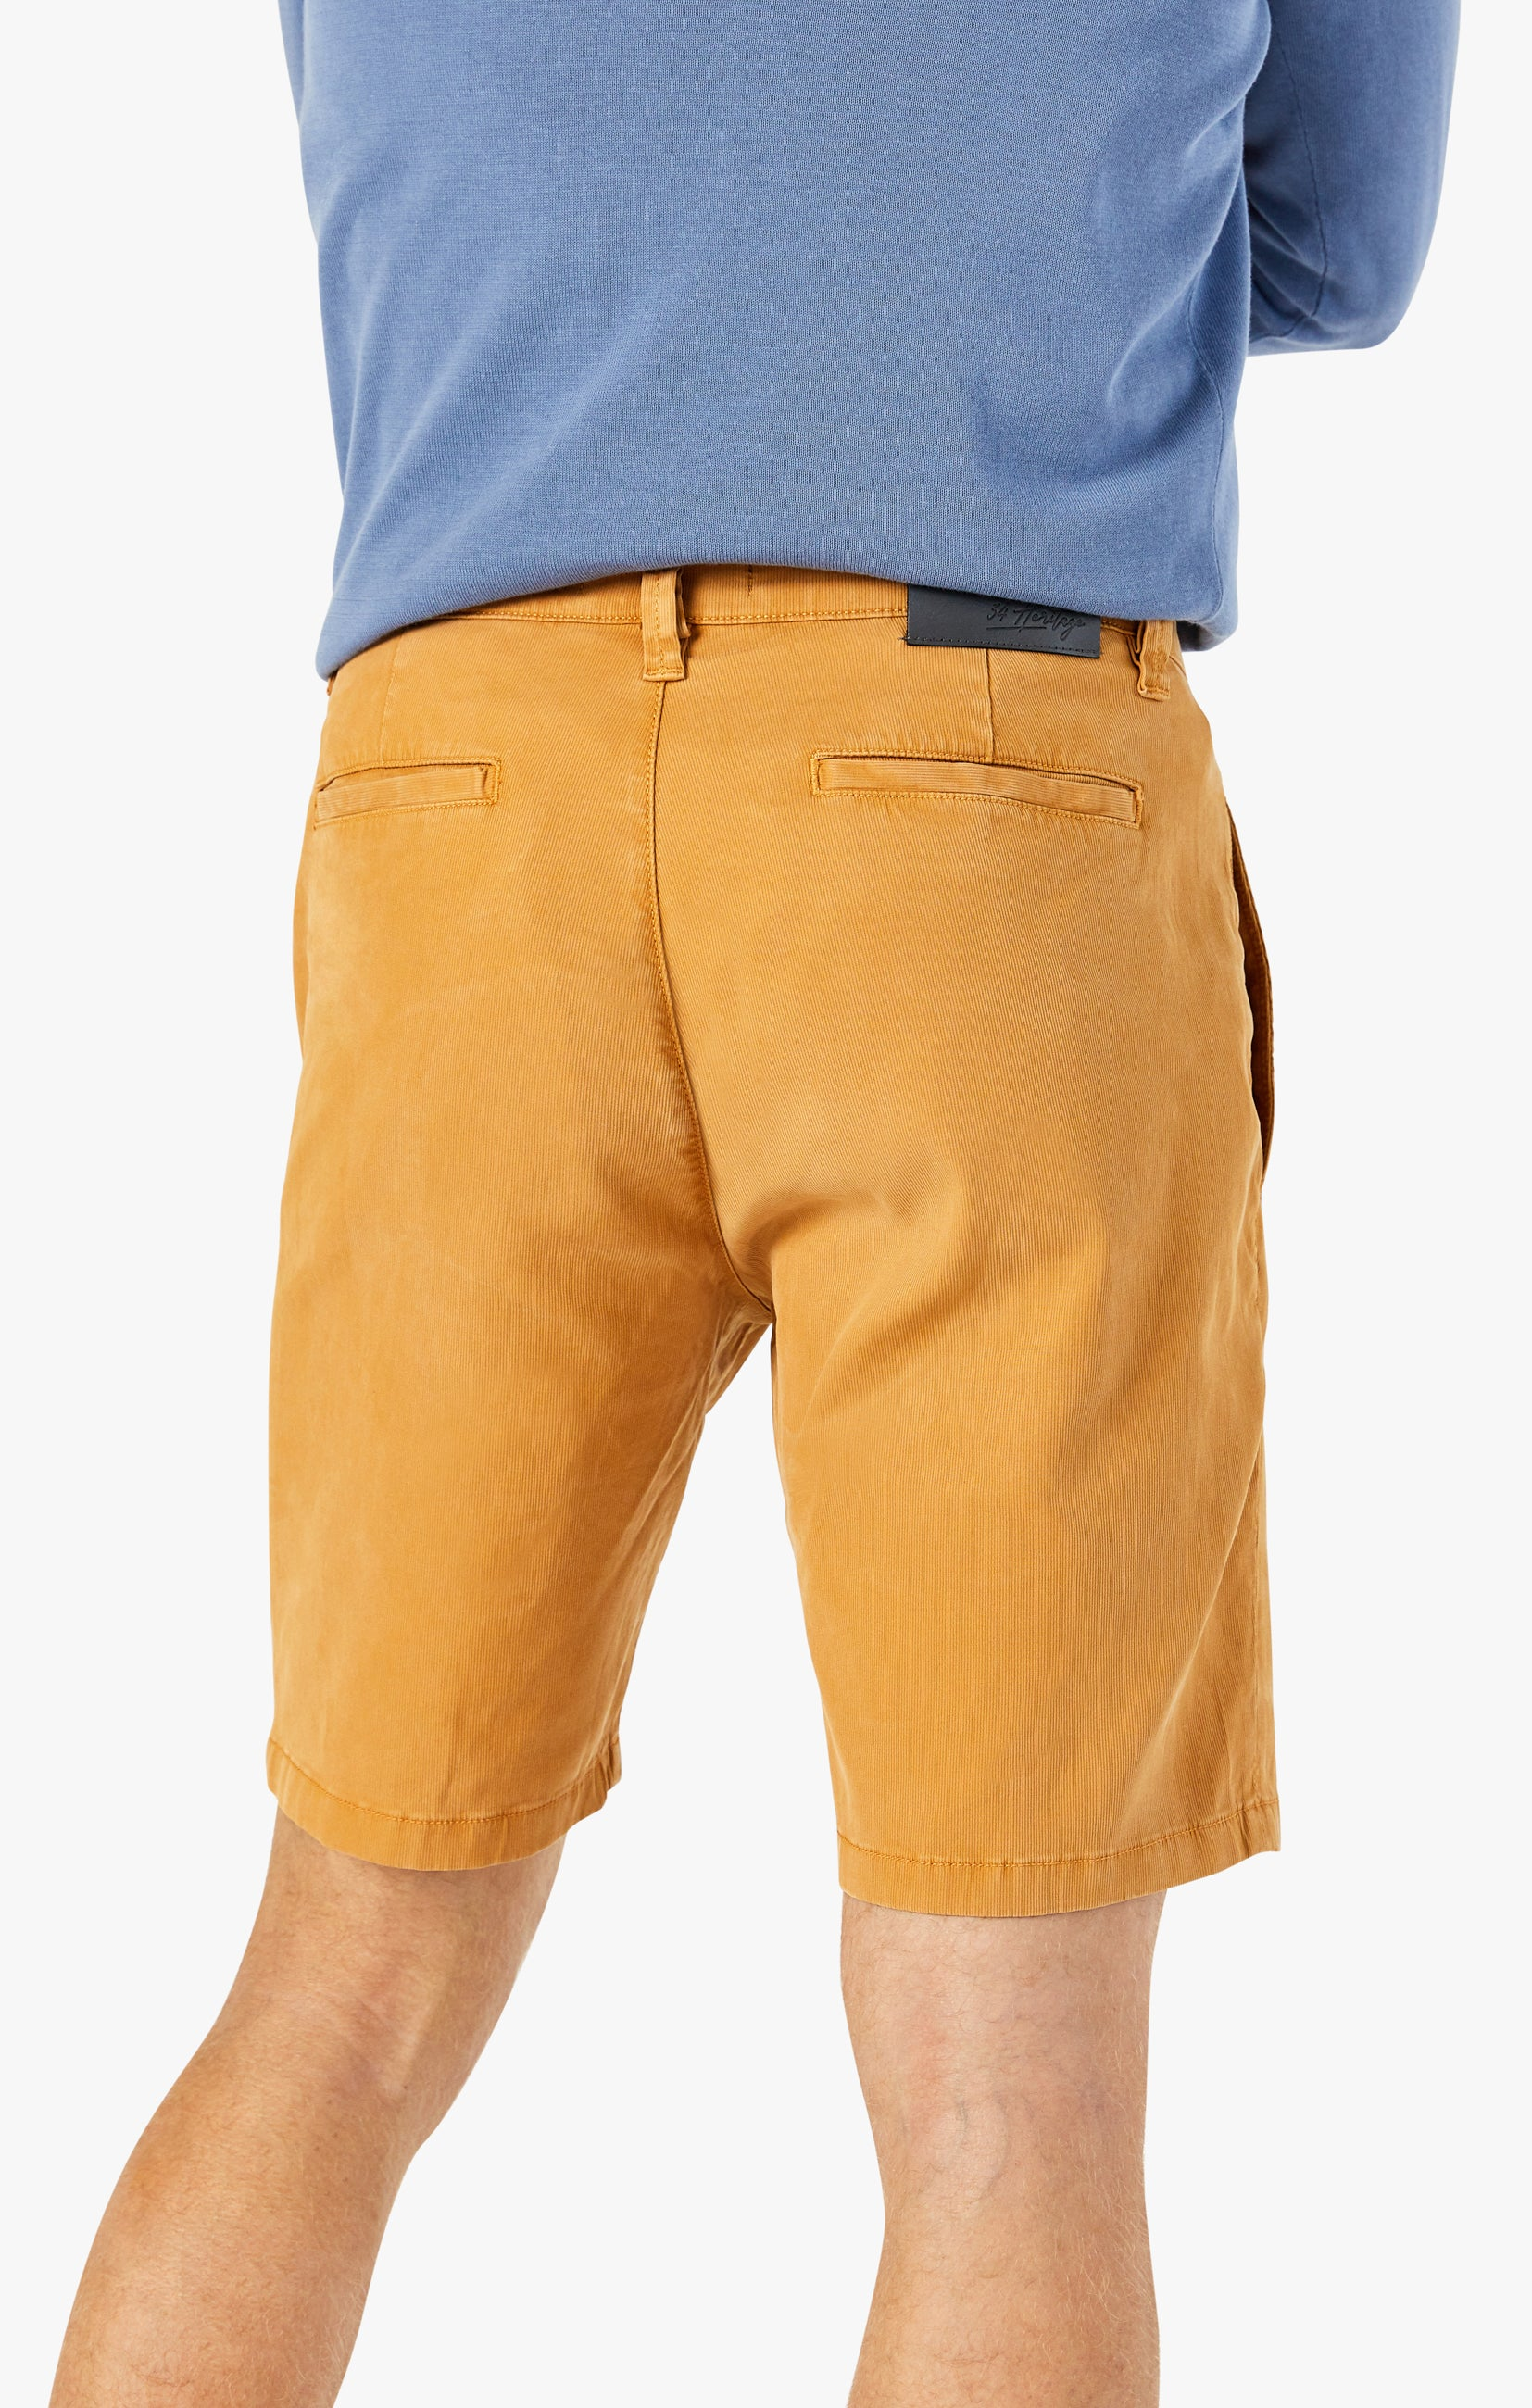 Nevada Shorts in Brown Sugar Fine Touch Image 3